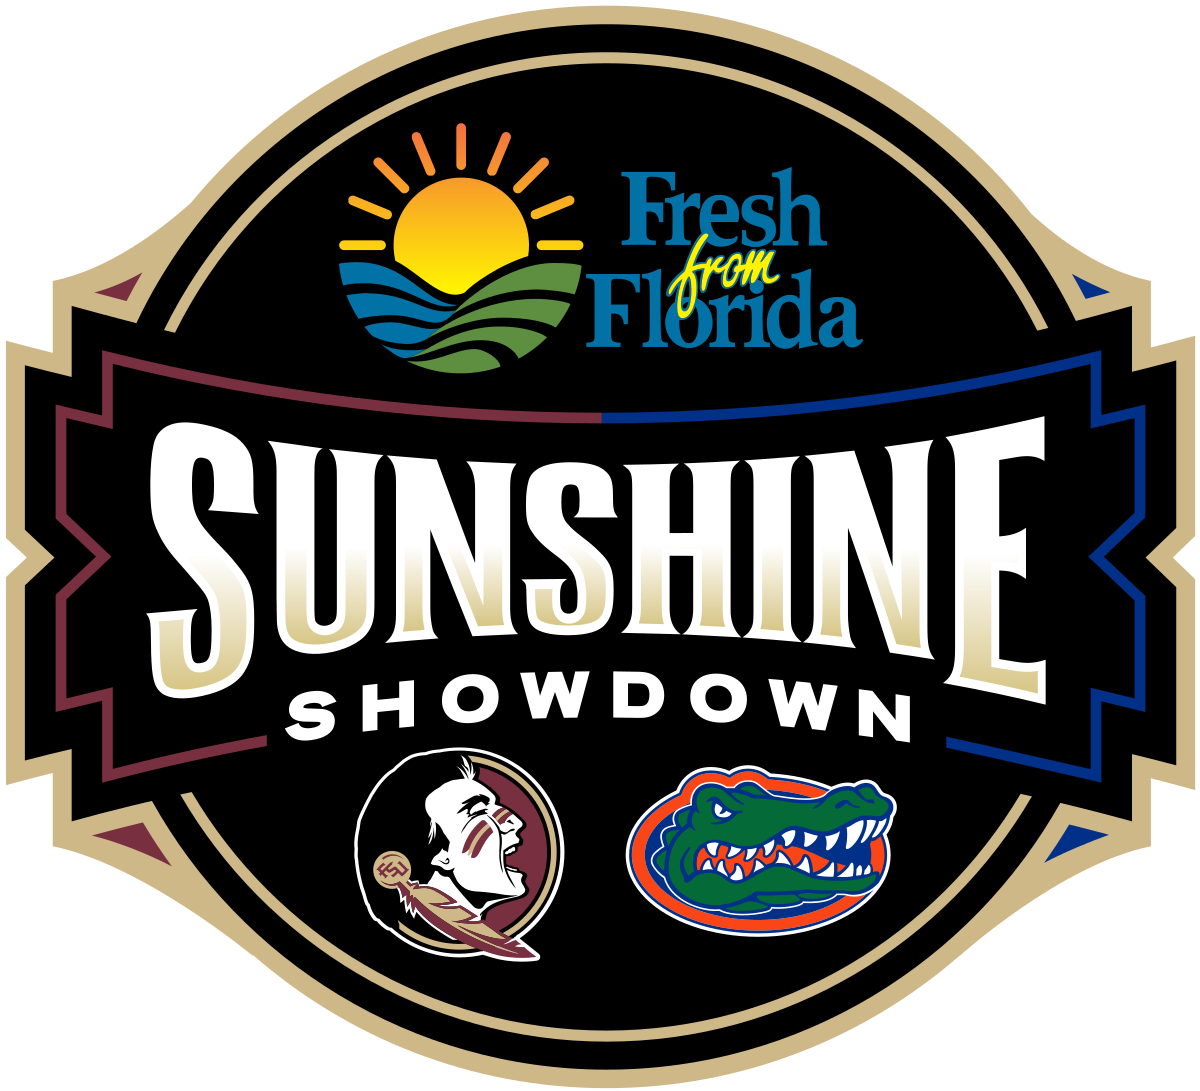 Fsu svg name. Florida state football rivalry